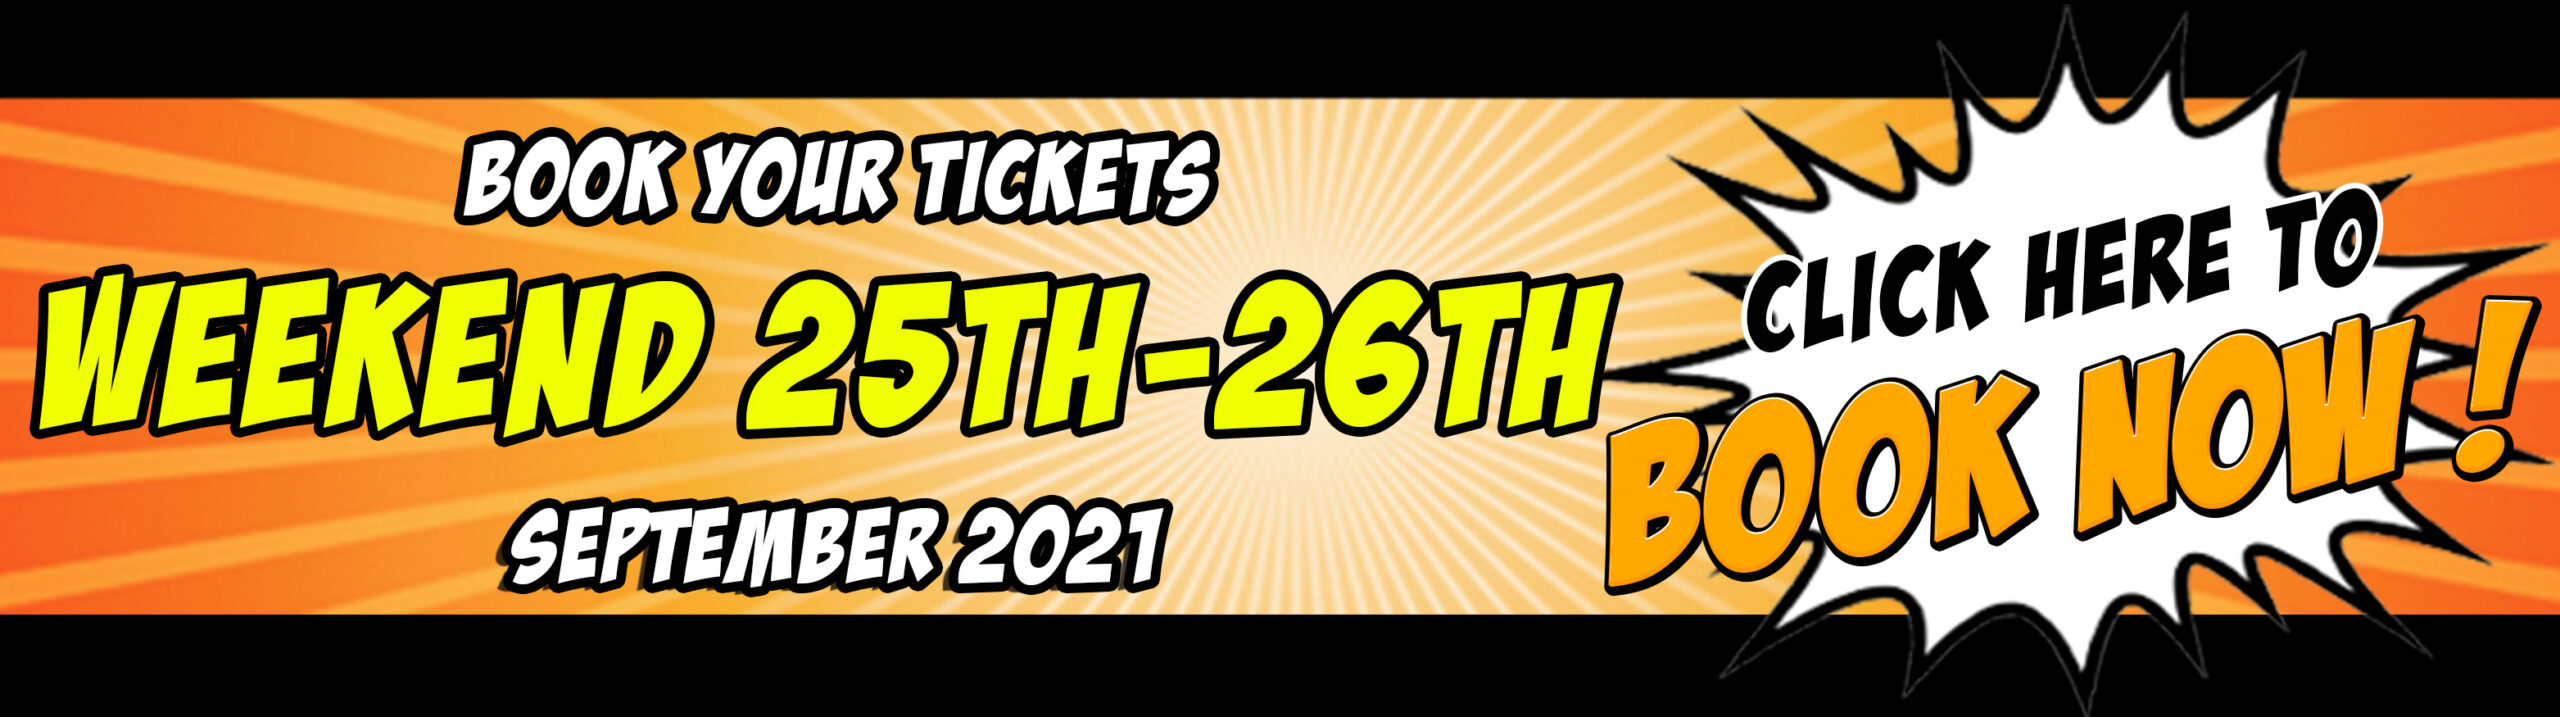 Buy weekend tickets for NORCON 2021